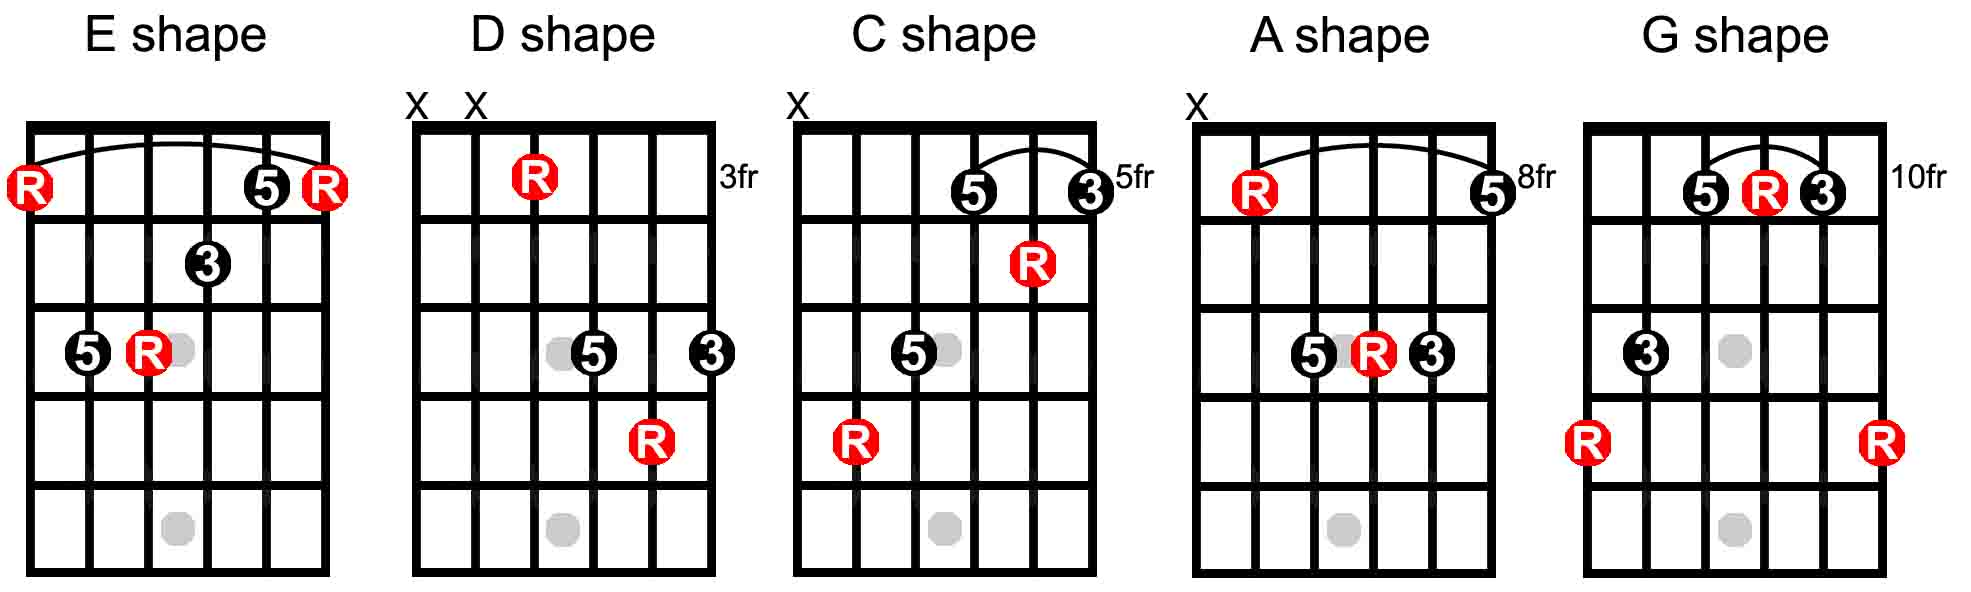 Guitar chords that go together